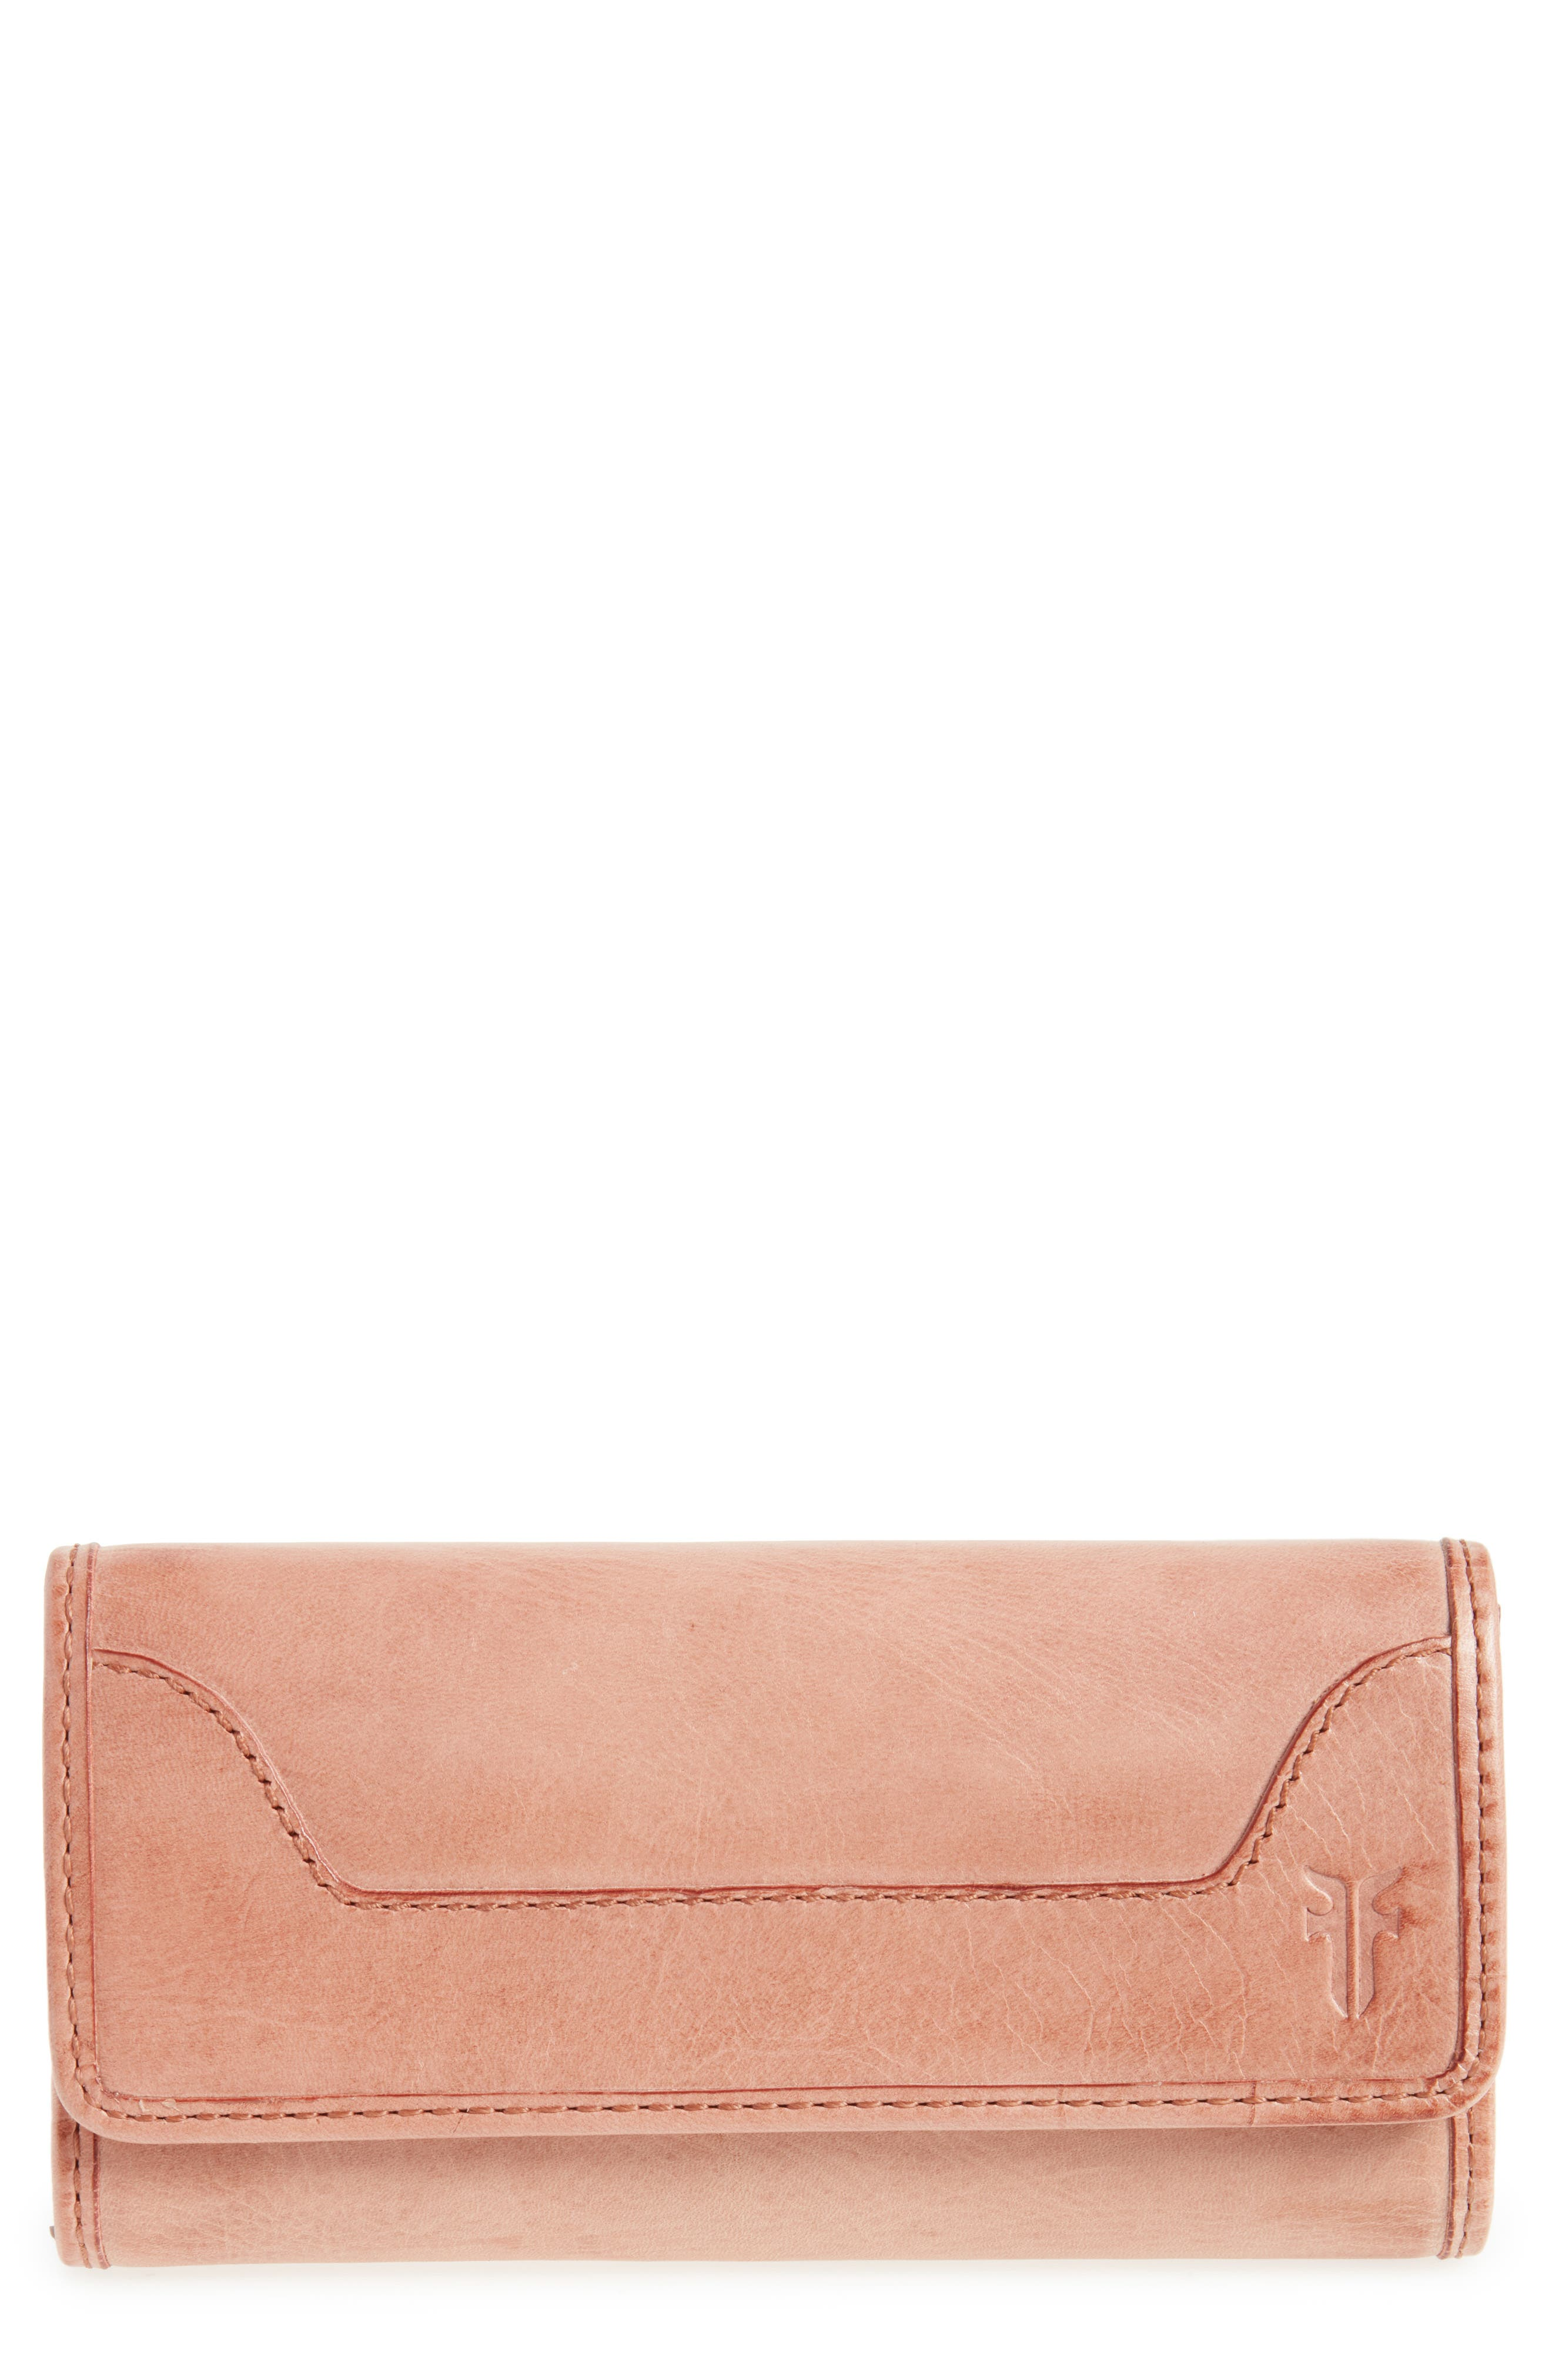 'Melissa' Continental Wallet,                         Main,                         color, Dusty Rose